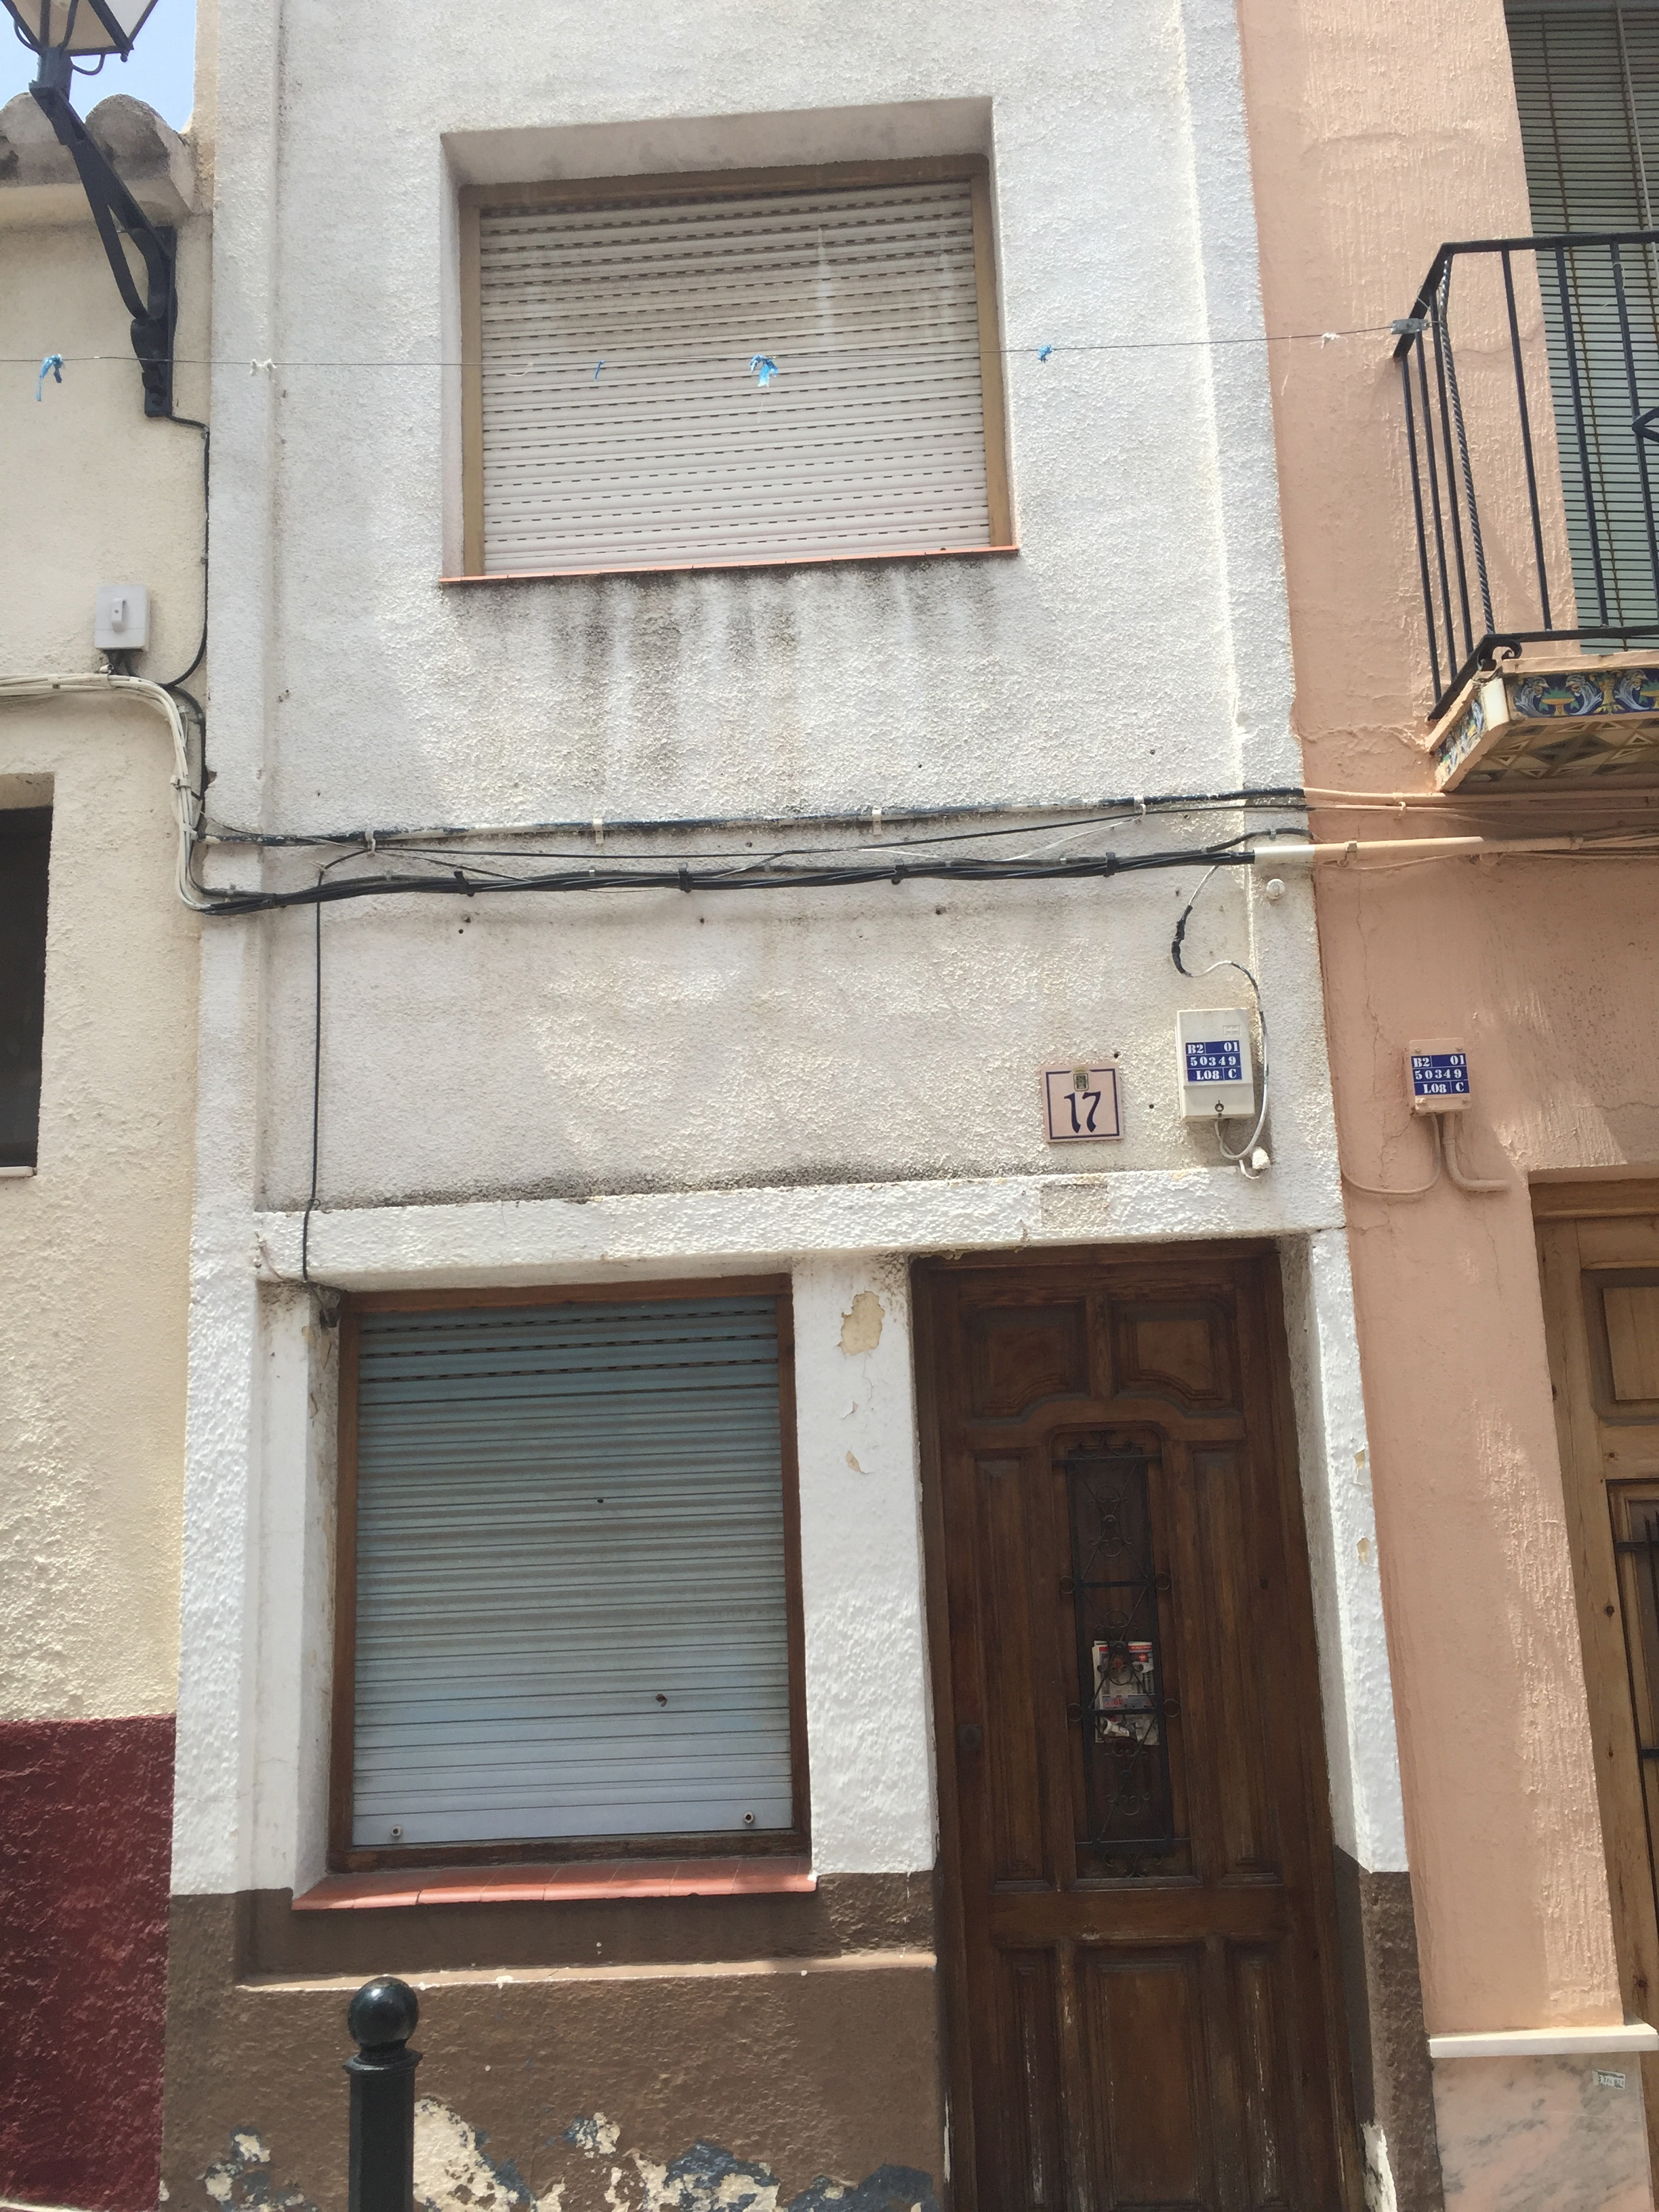 2 townhouses for sale old town calpe hola properties calpe